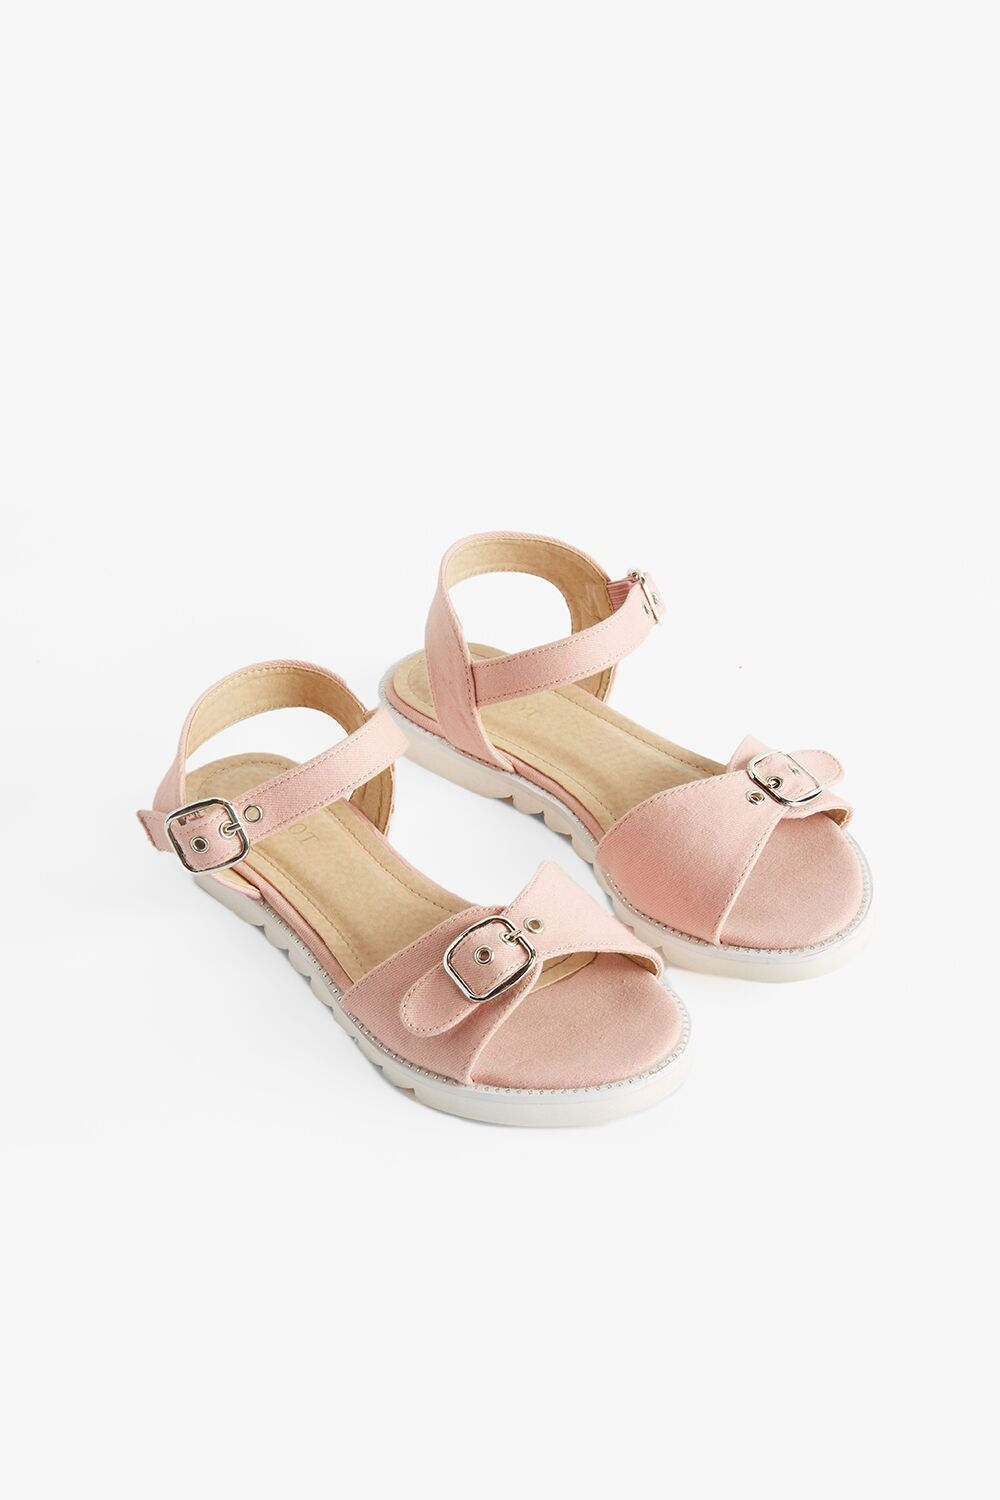 BUCKLE EYELET SANDAL in colour PARADISE PINK